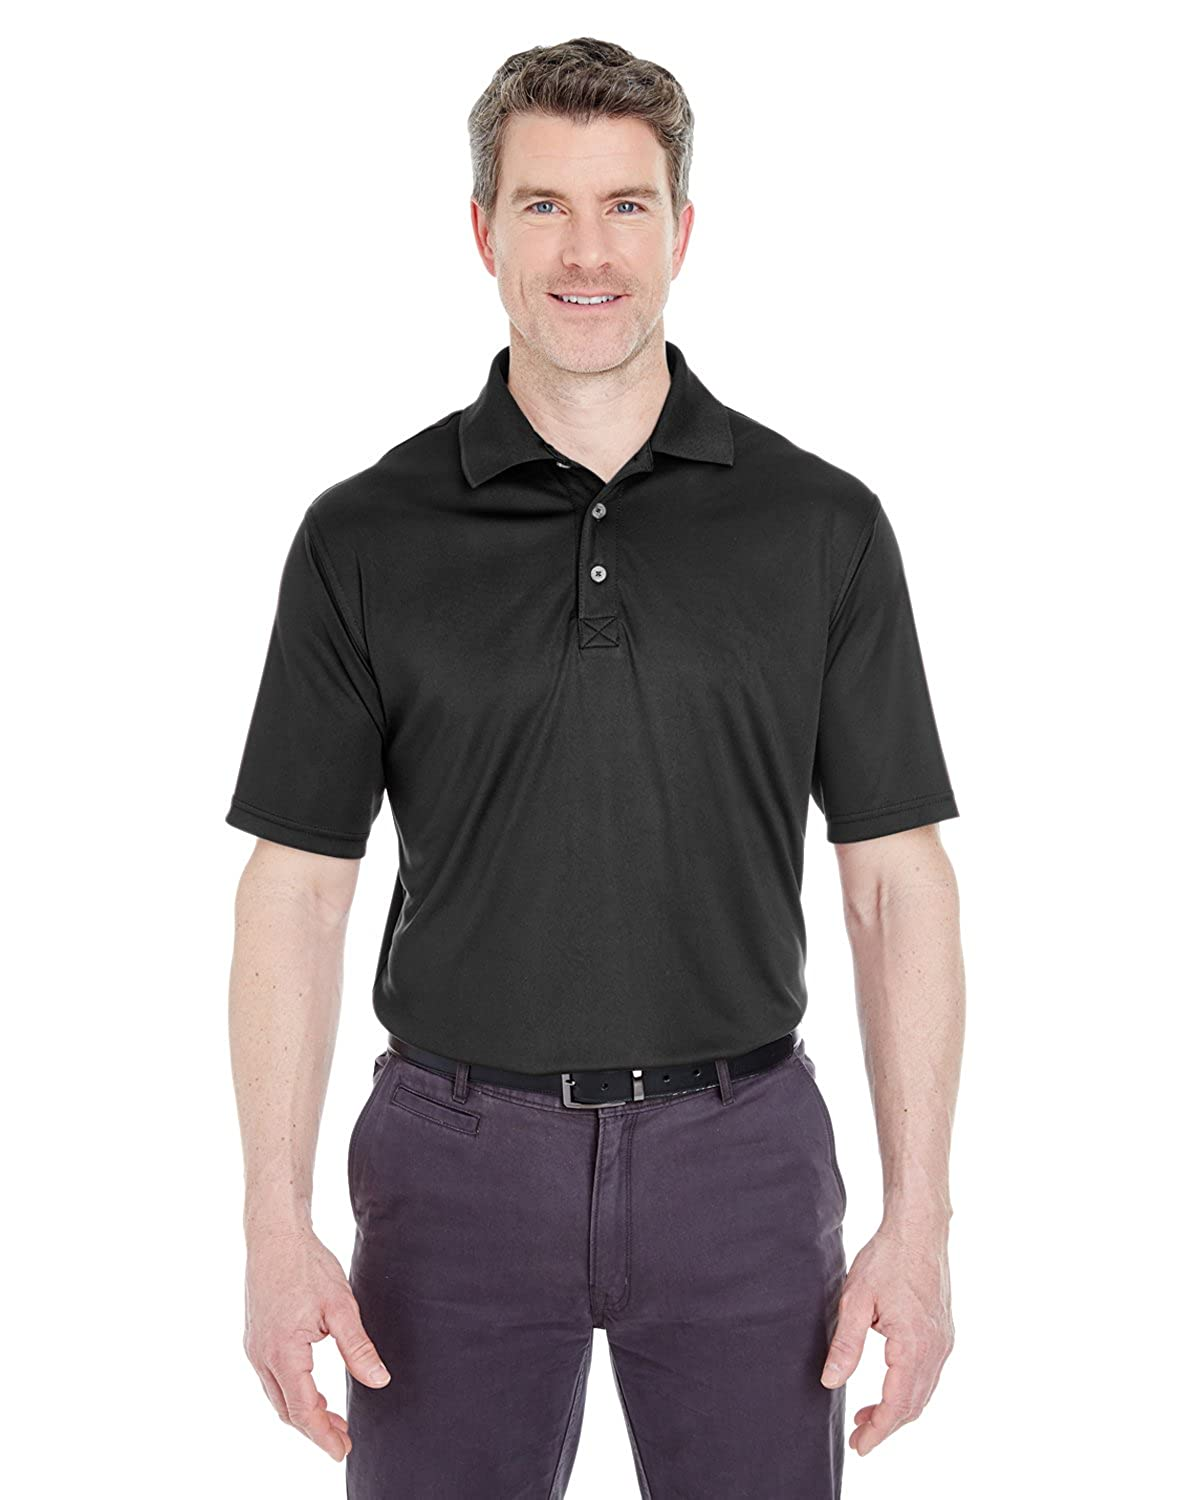 Pack of 6 Black Large. UltraClub Mens Cool /& Dry Interlock Polo Shirt